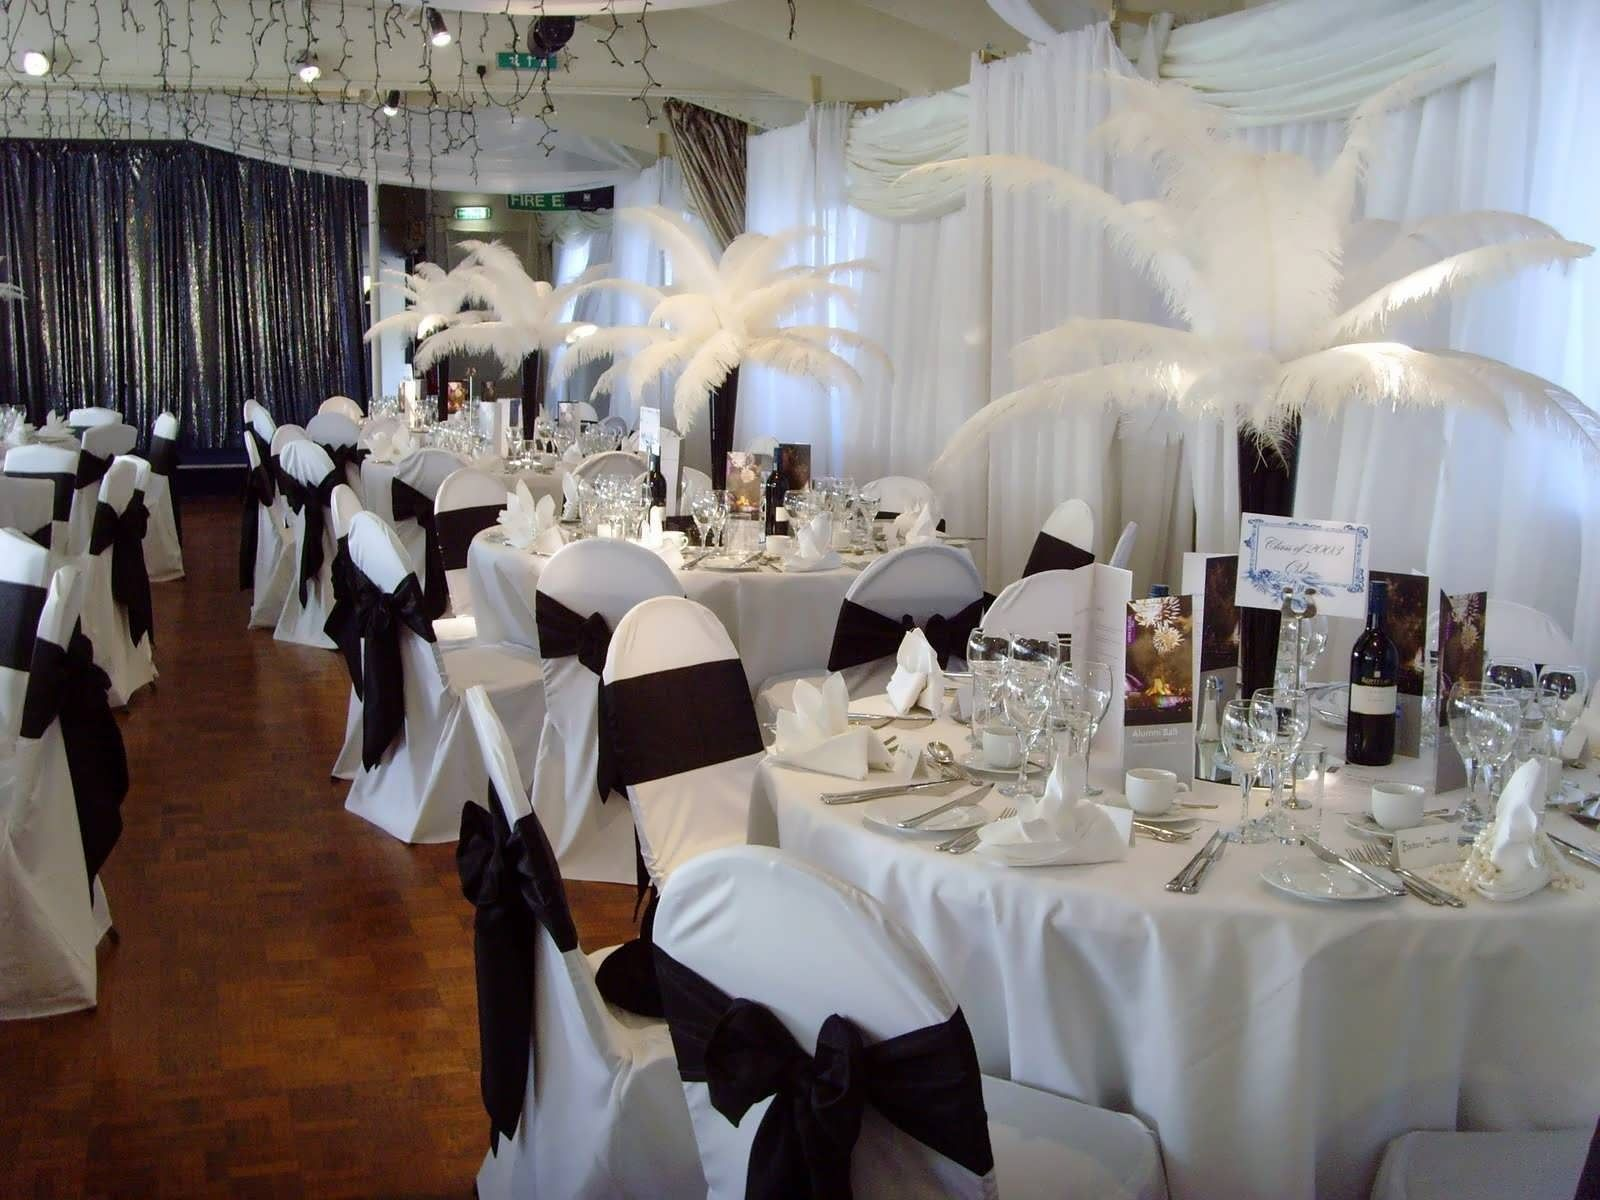 Wedding Decorations Ideas Pictures Included And Simple Elegant With